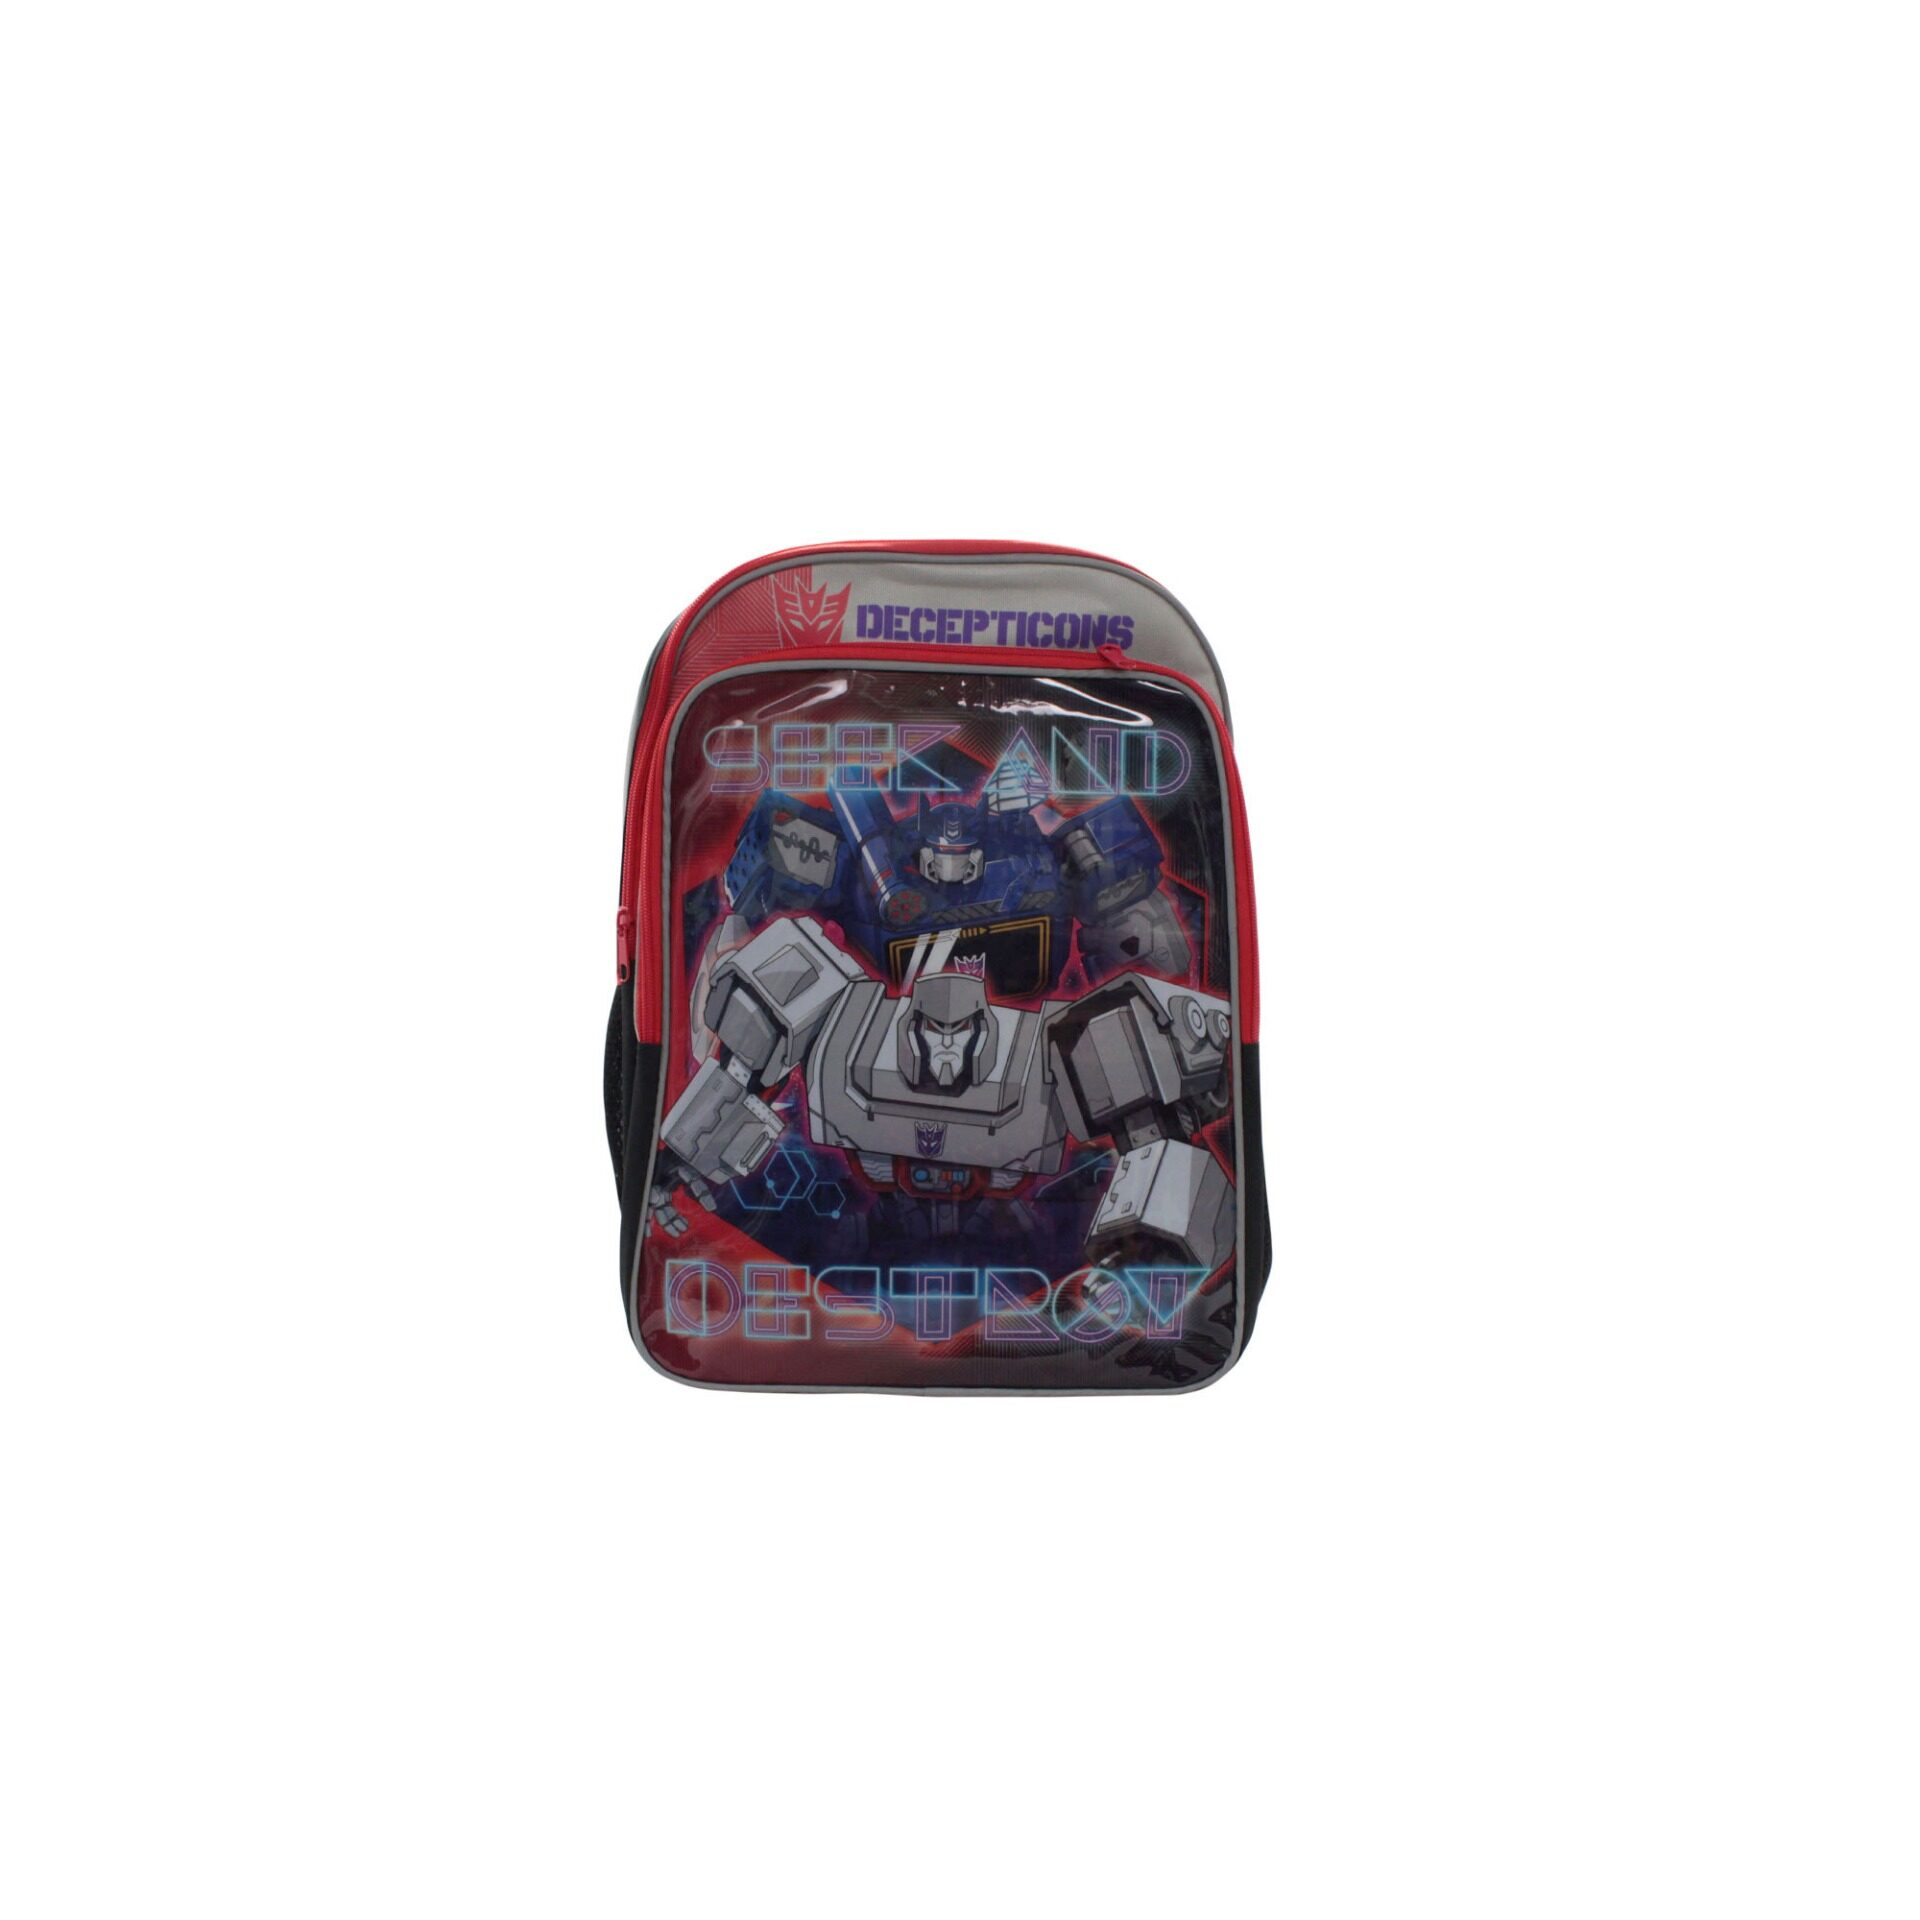 Transformers Decepticons School Bag With Front Zipper Pouch Kid\'s Boys Pre School Bag (Grey & Black) Age 7 Years & Above